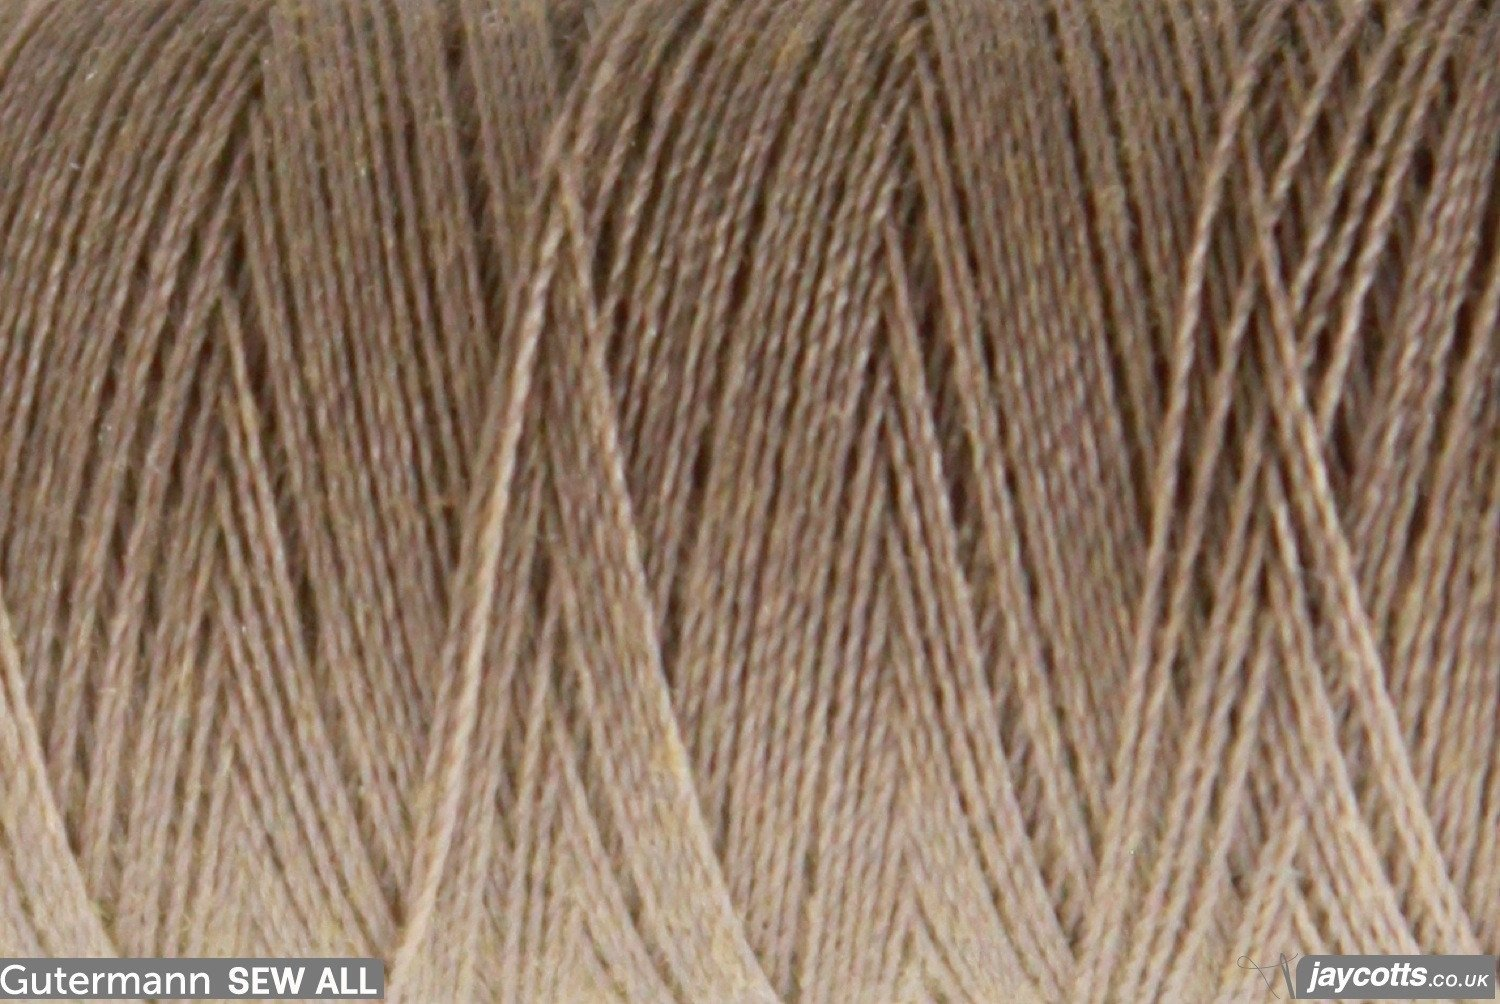 Sew-All Polyester Sewing Thread - Colour: #724 Taupe